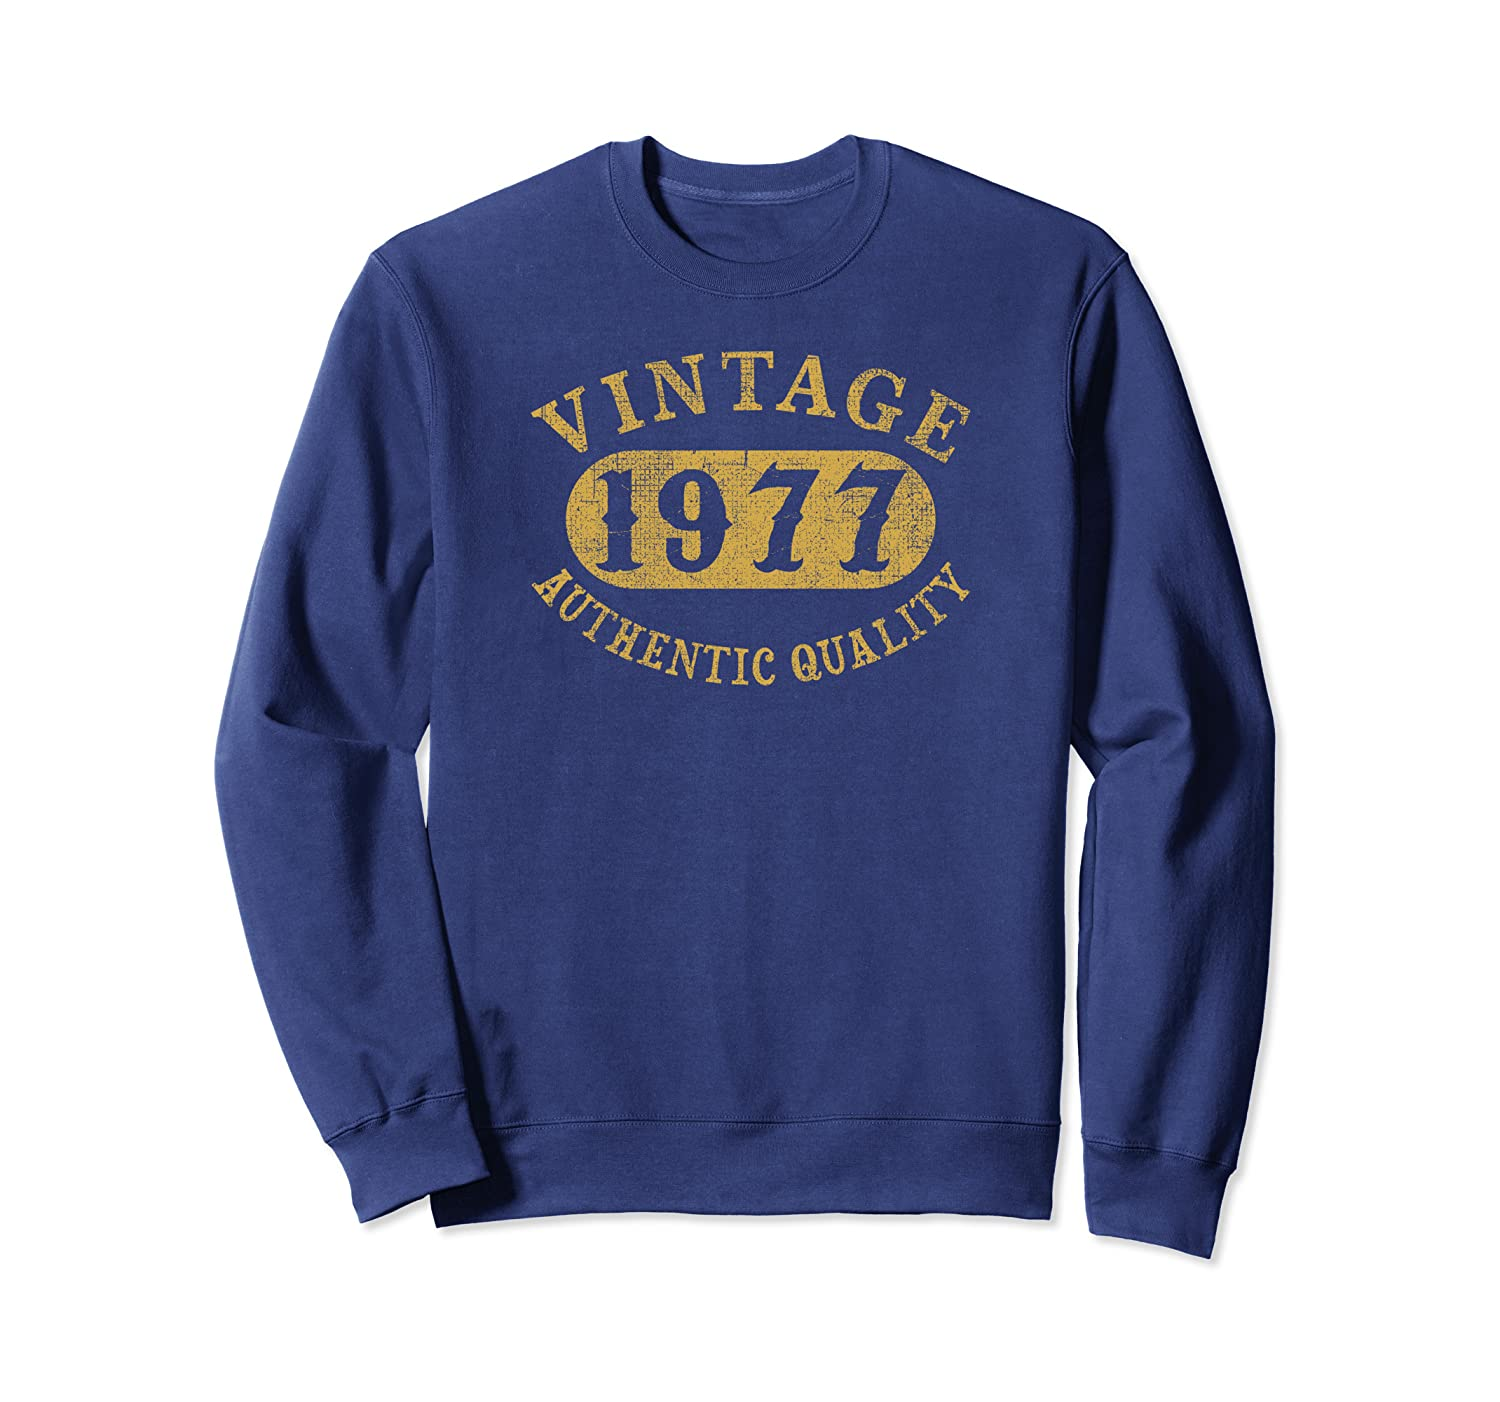 1977 Vintage 42 years old 42nd Birthday, Anniversary Gift Sweatshirt